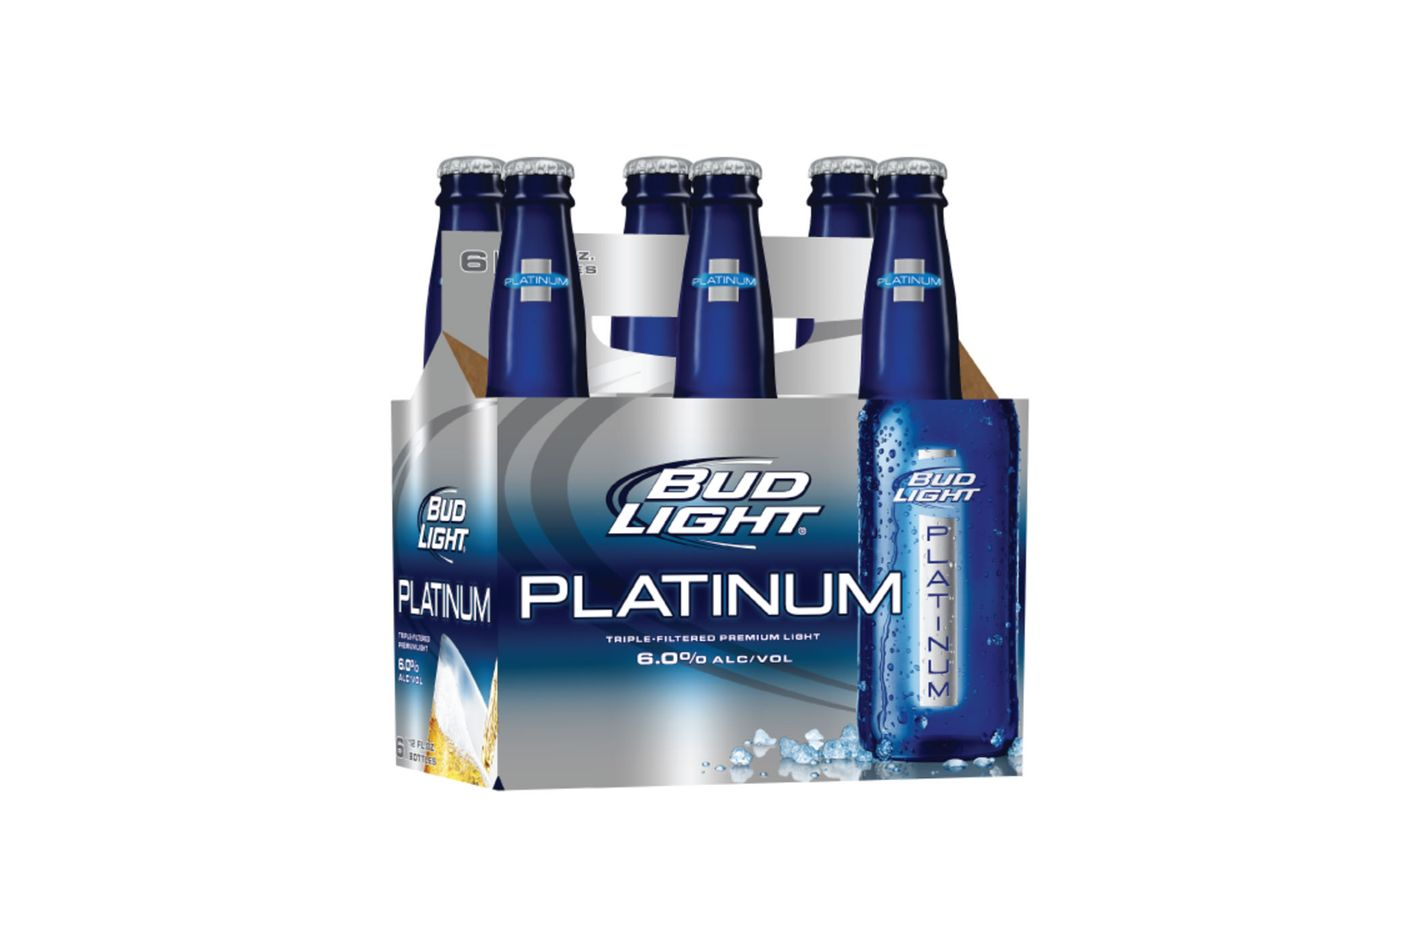 Stay Platinum, Bud Light.